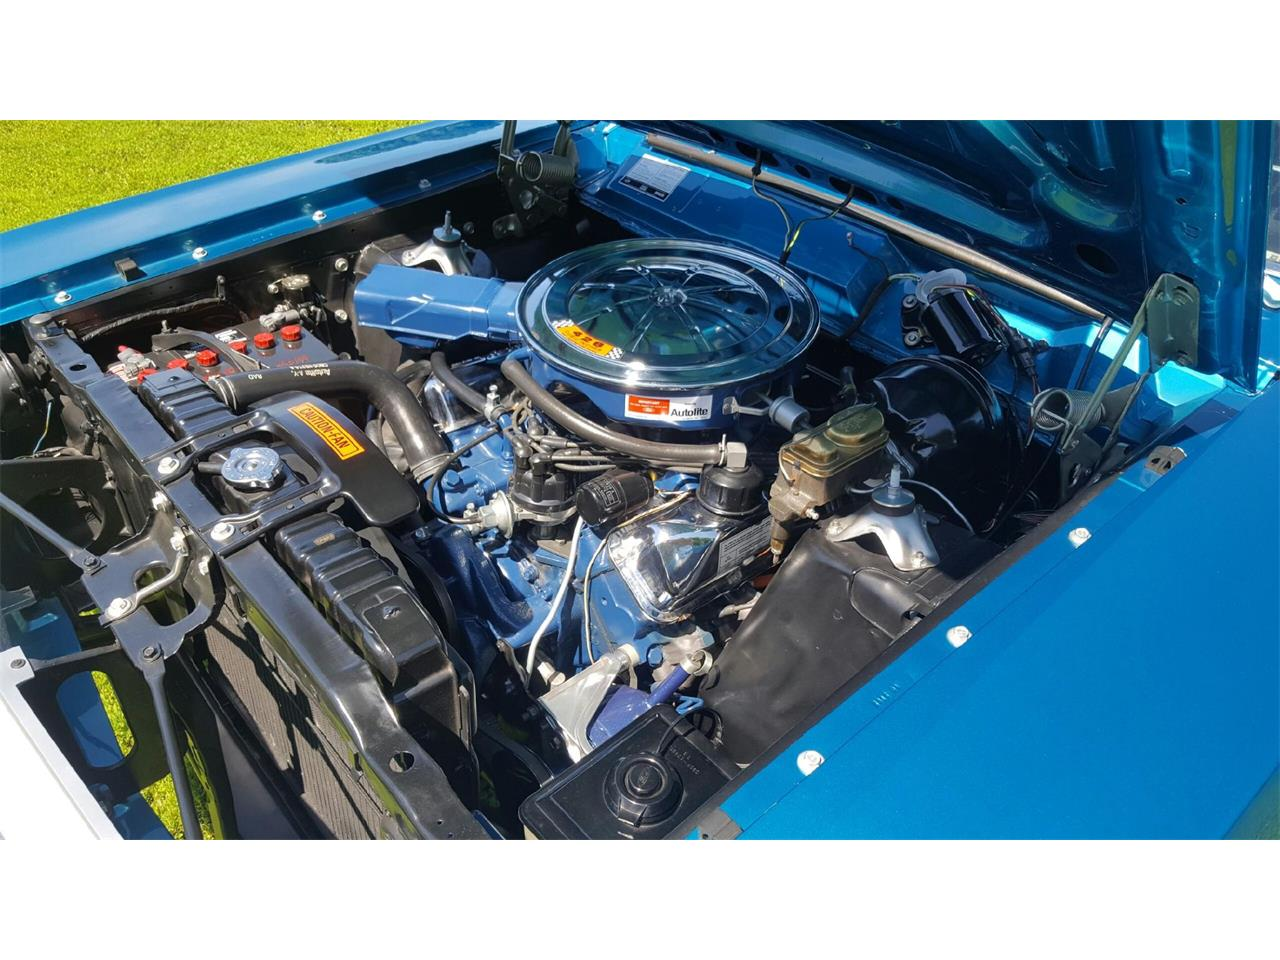 Large Picture of Classic '69 Torino located in Annandale Minnesota Auction Vehicle Offered by Classic Rides and Rods - L8I4